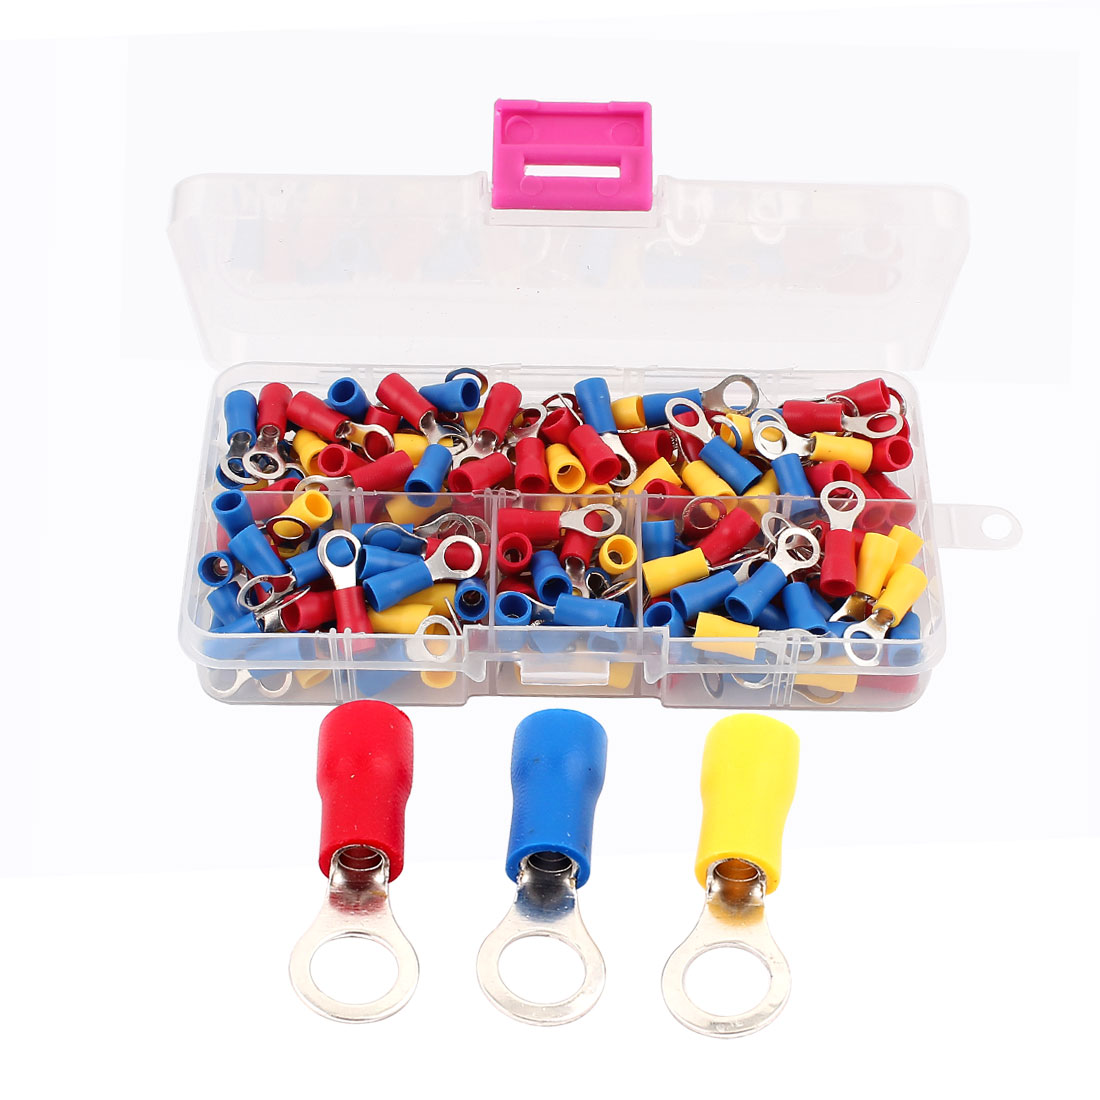 180pcs RVS2-5 Yellow Blue Red Sleeve Pre Insulated Ring Terminals Cable Wiring Connector for AWG 16-14 Wire